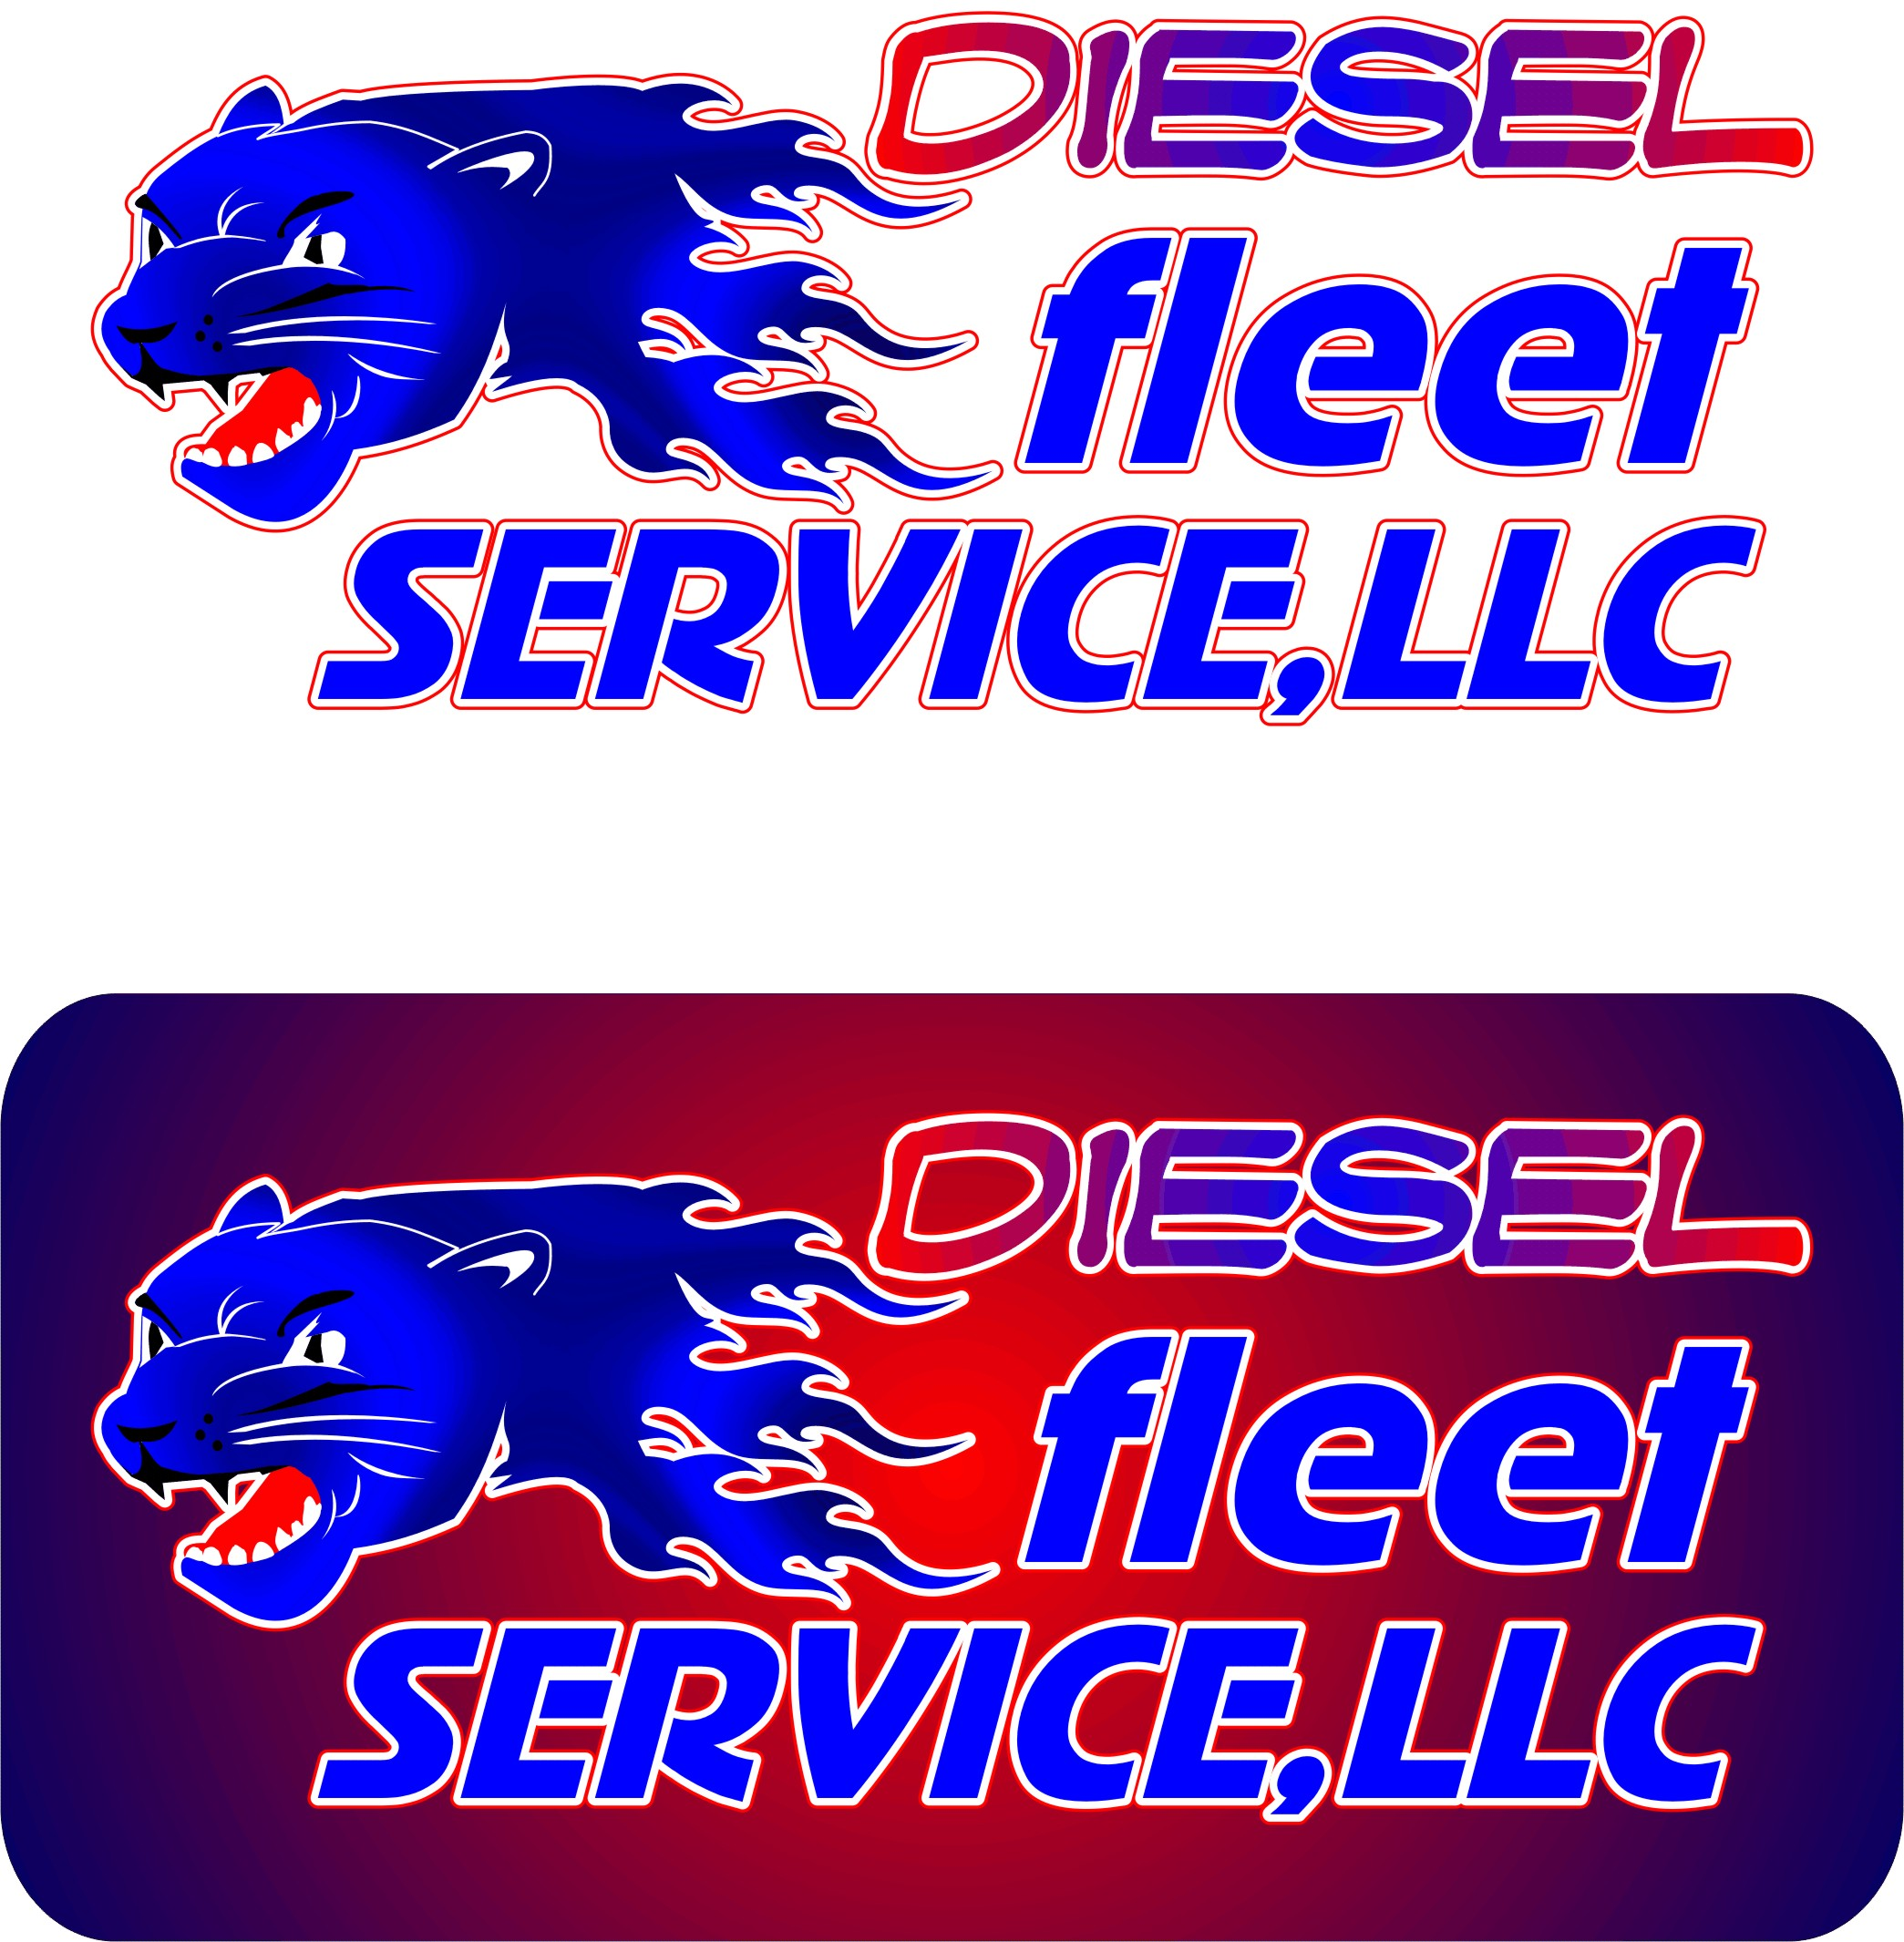 Logo Design by Korsunov Oleg - Entry No. 6 in the Logo Design Contest Artistic Logo Design for Diesel Fleet Service, LLC.